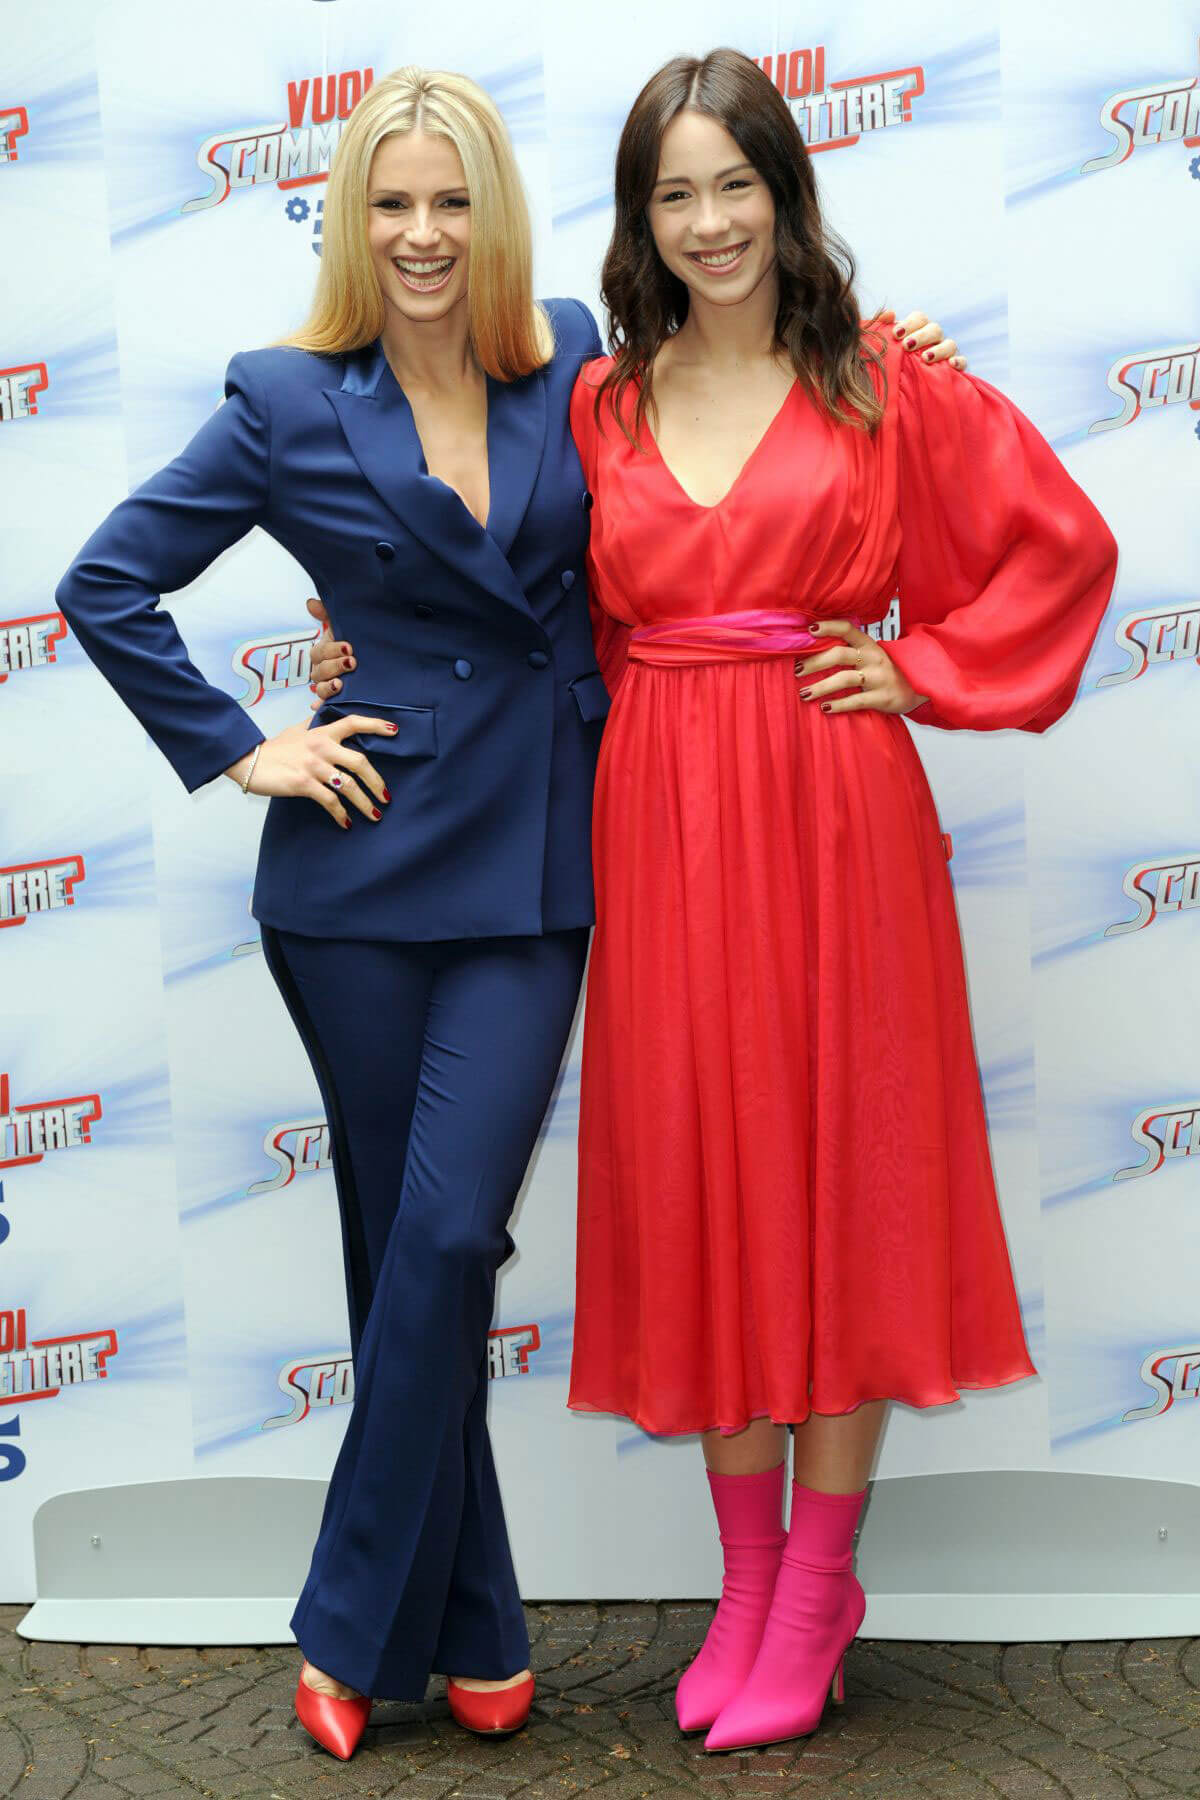 Michelle Hunziker and Aurora Ramazzotti Stills at Do You Want to Bet Show Photocall in Milan 2018/05/03 17